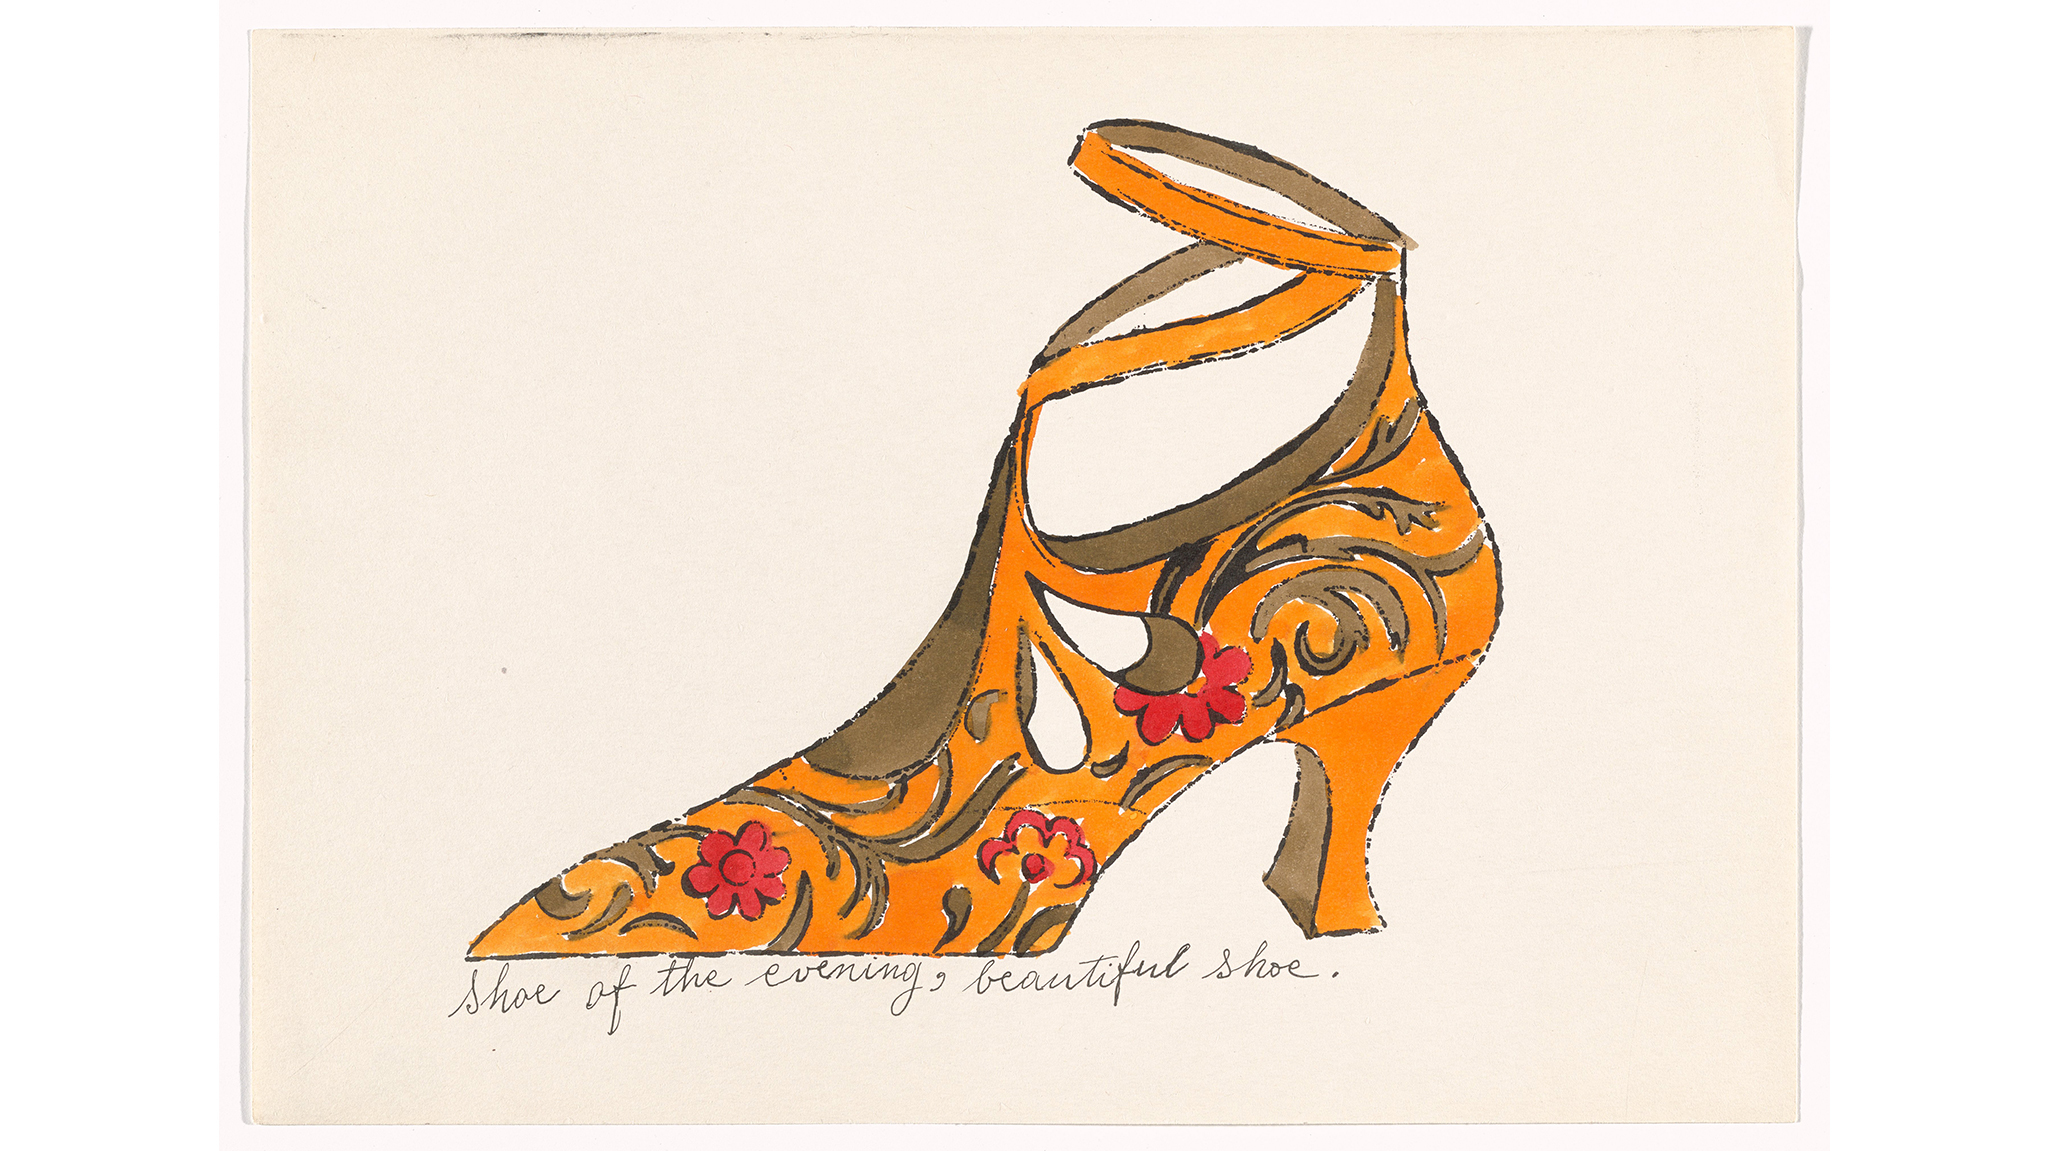 Andy Warhol, Untitled from À la recherche du shoe perdu, c. 1955